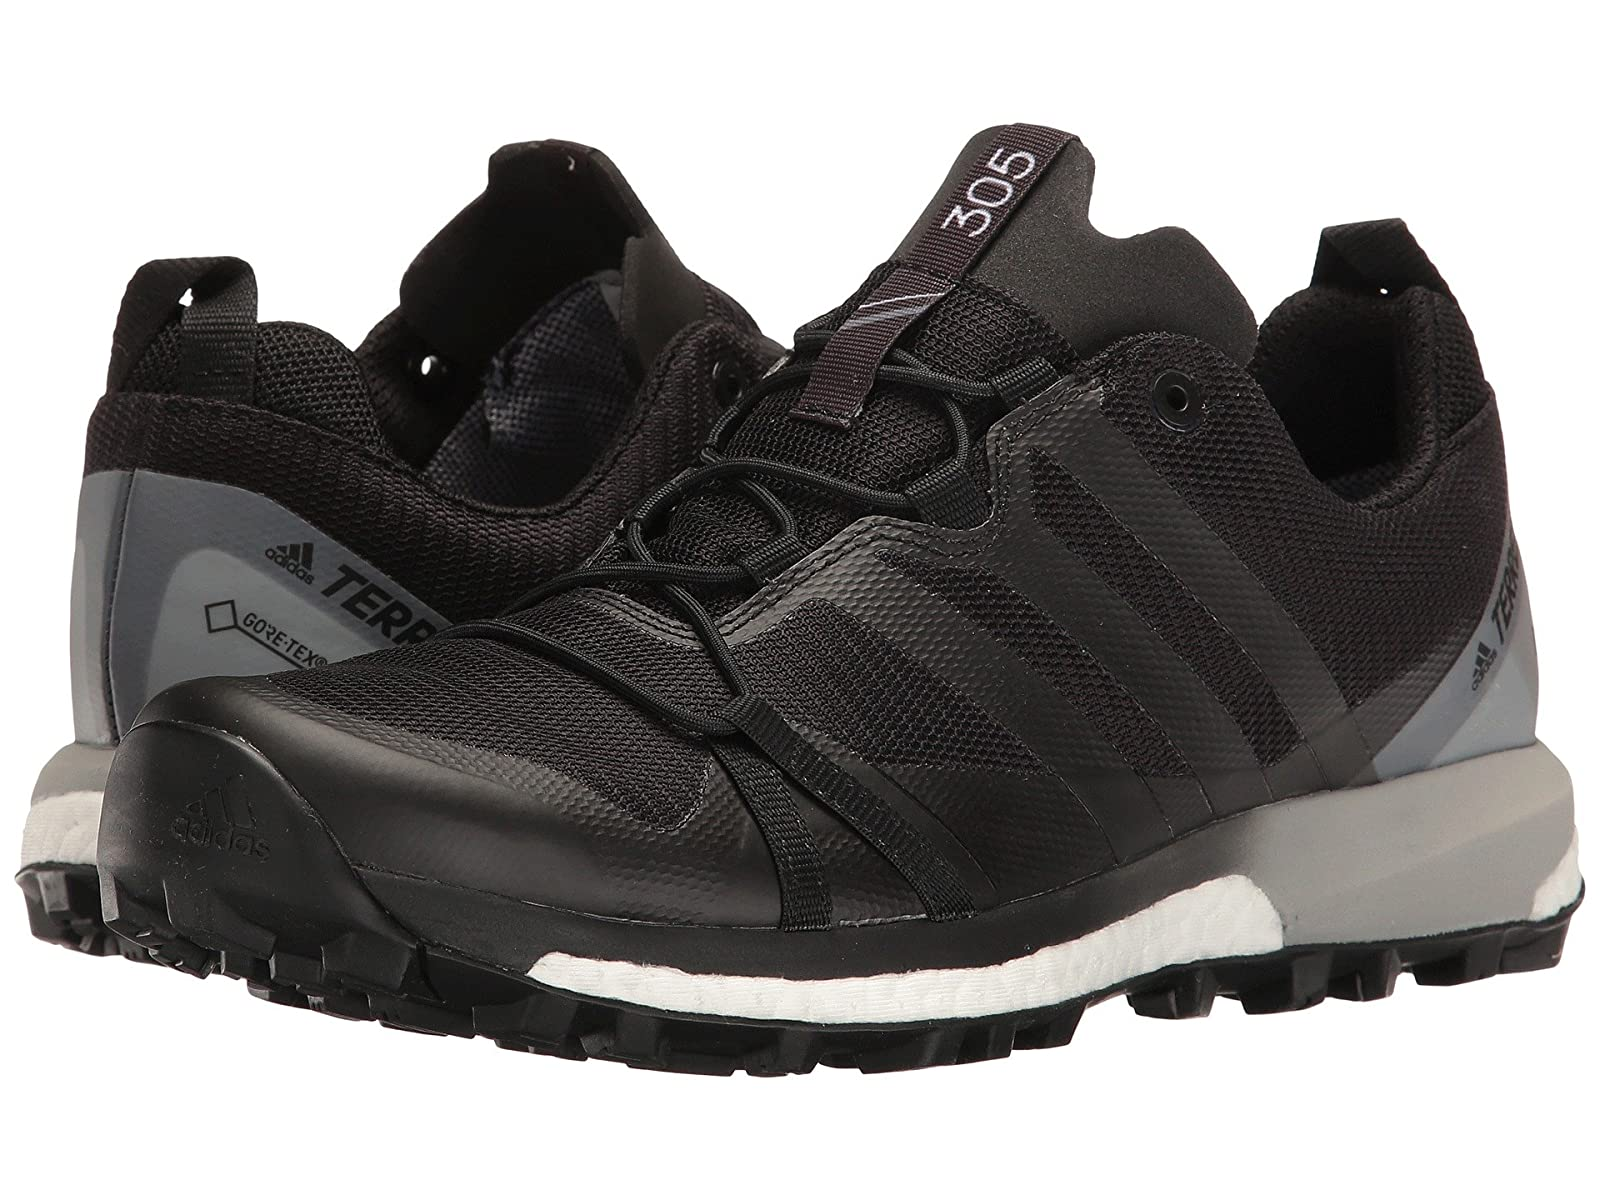 adidas Outdoor Terrex Agravic GTXStylish and characteristic shoes